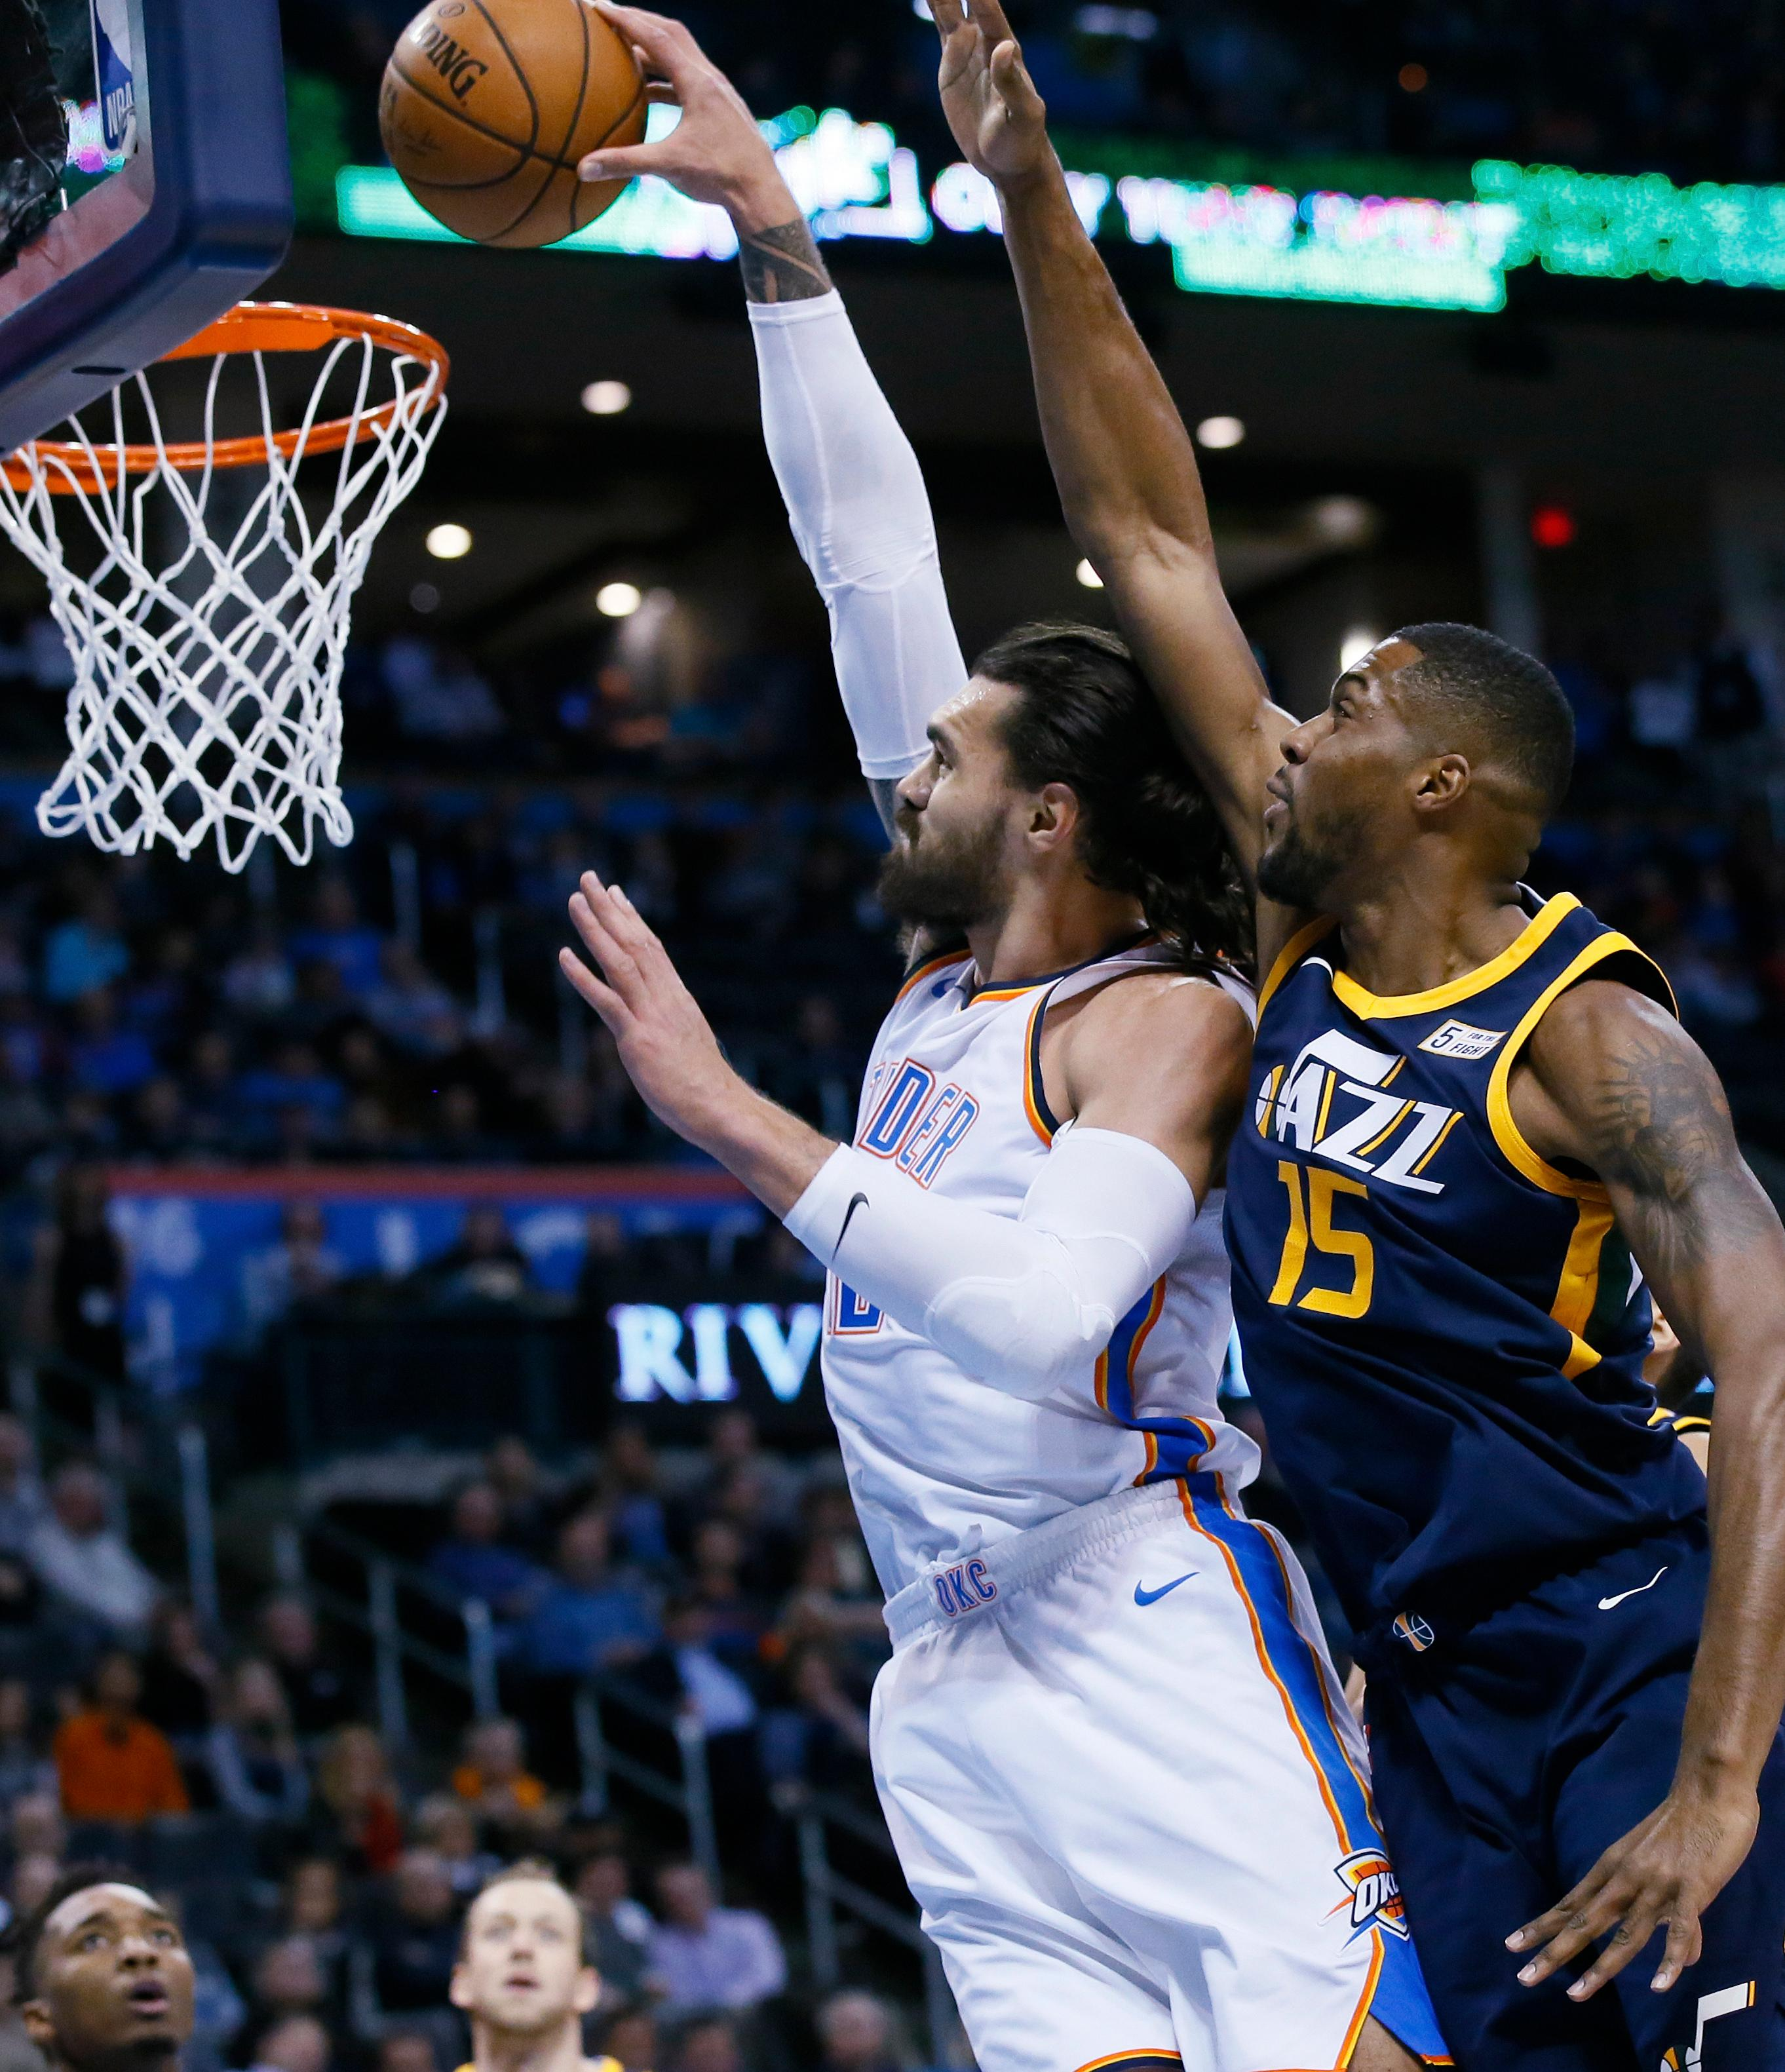 Oklahoma City Thunder center Steven Adams, left, shoots in front of Utah Jazz forward Derrick Favors (15) in the first quarter of an NBA basketball game in Oklahoma City, Tuesday, Dec. 5, 2017. (AP Photo/Sue Ogrocki)